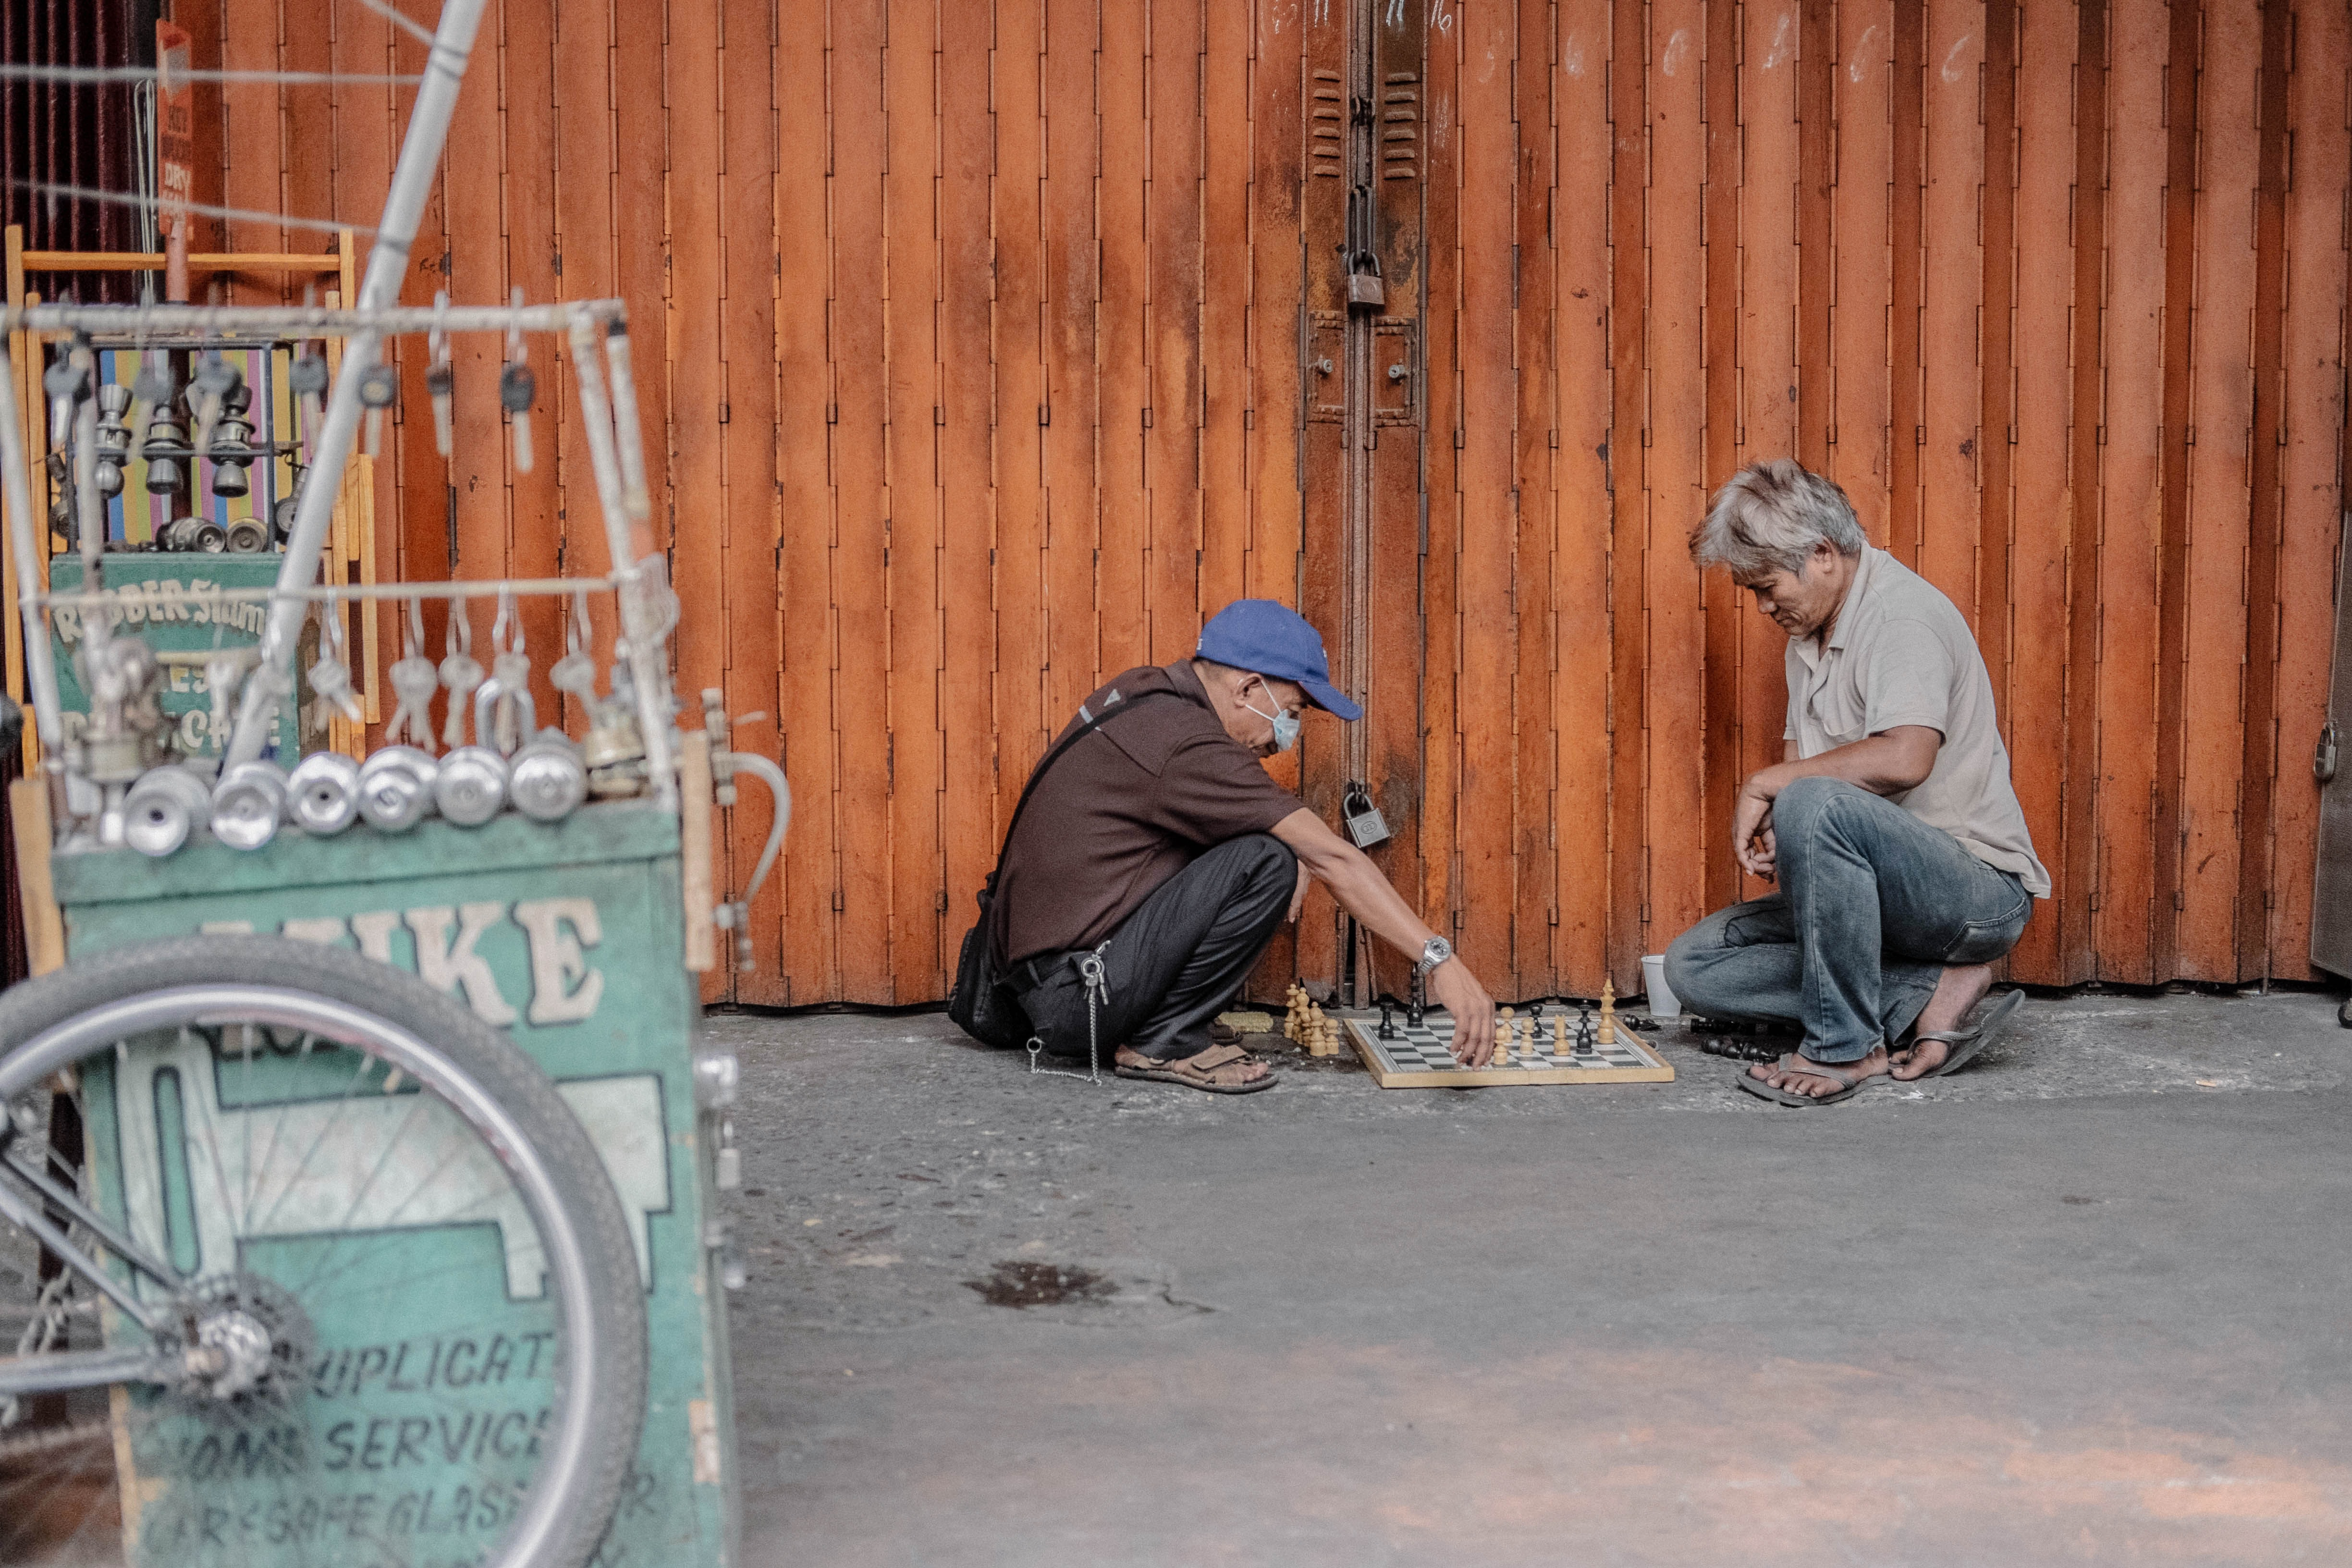 Two men playing chess while sitting on the floor in front of a red building, next to a bike store